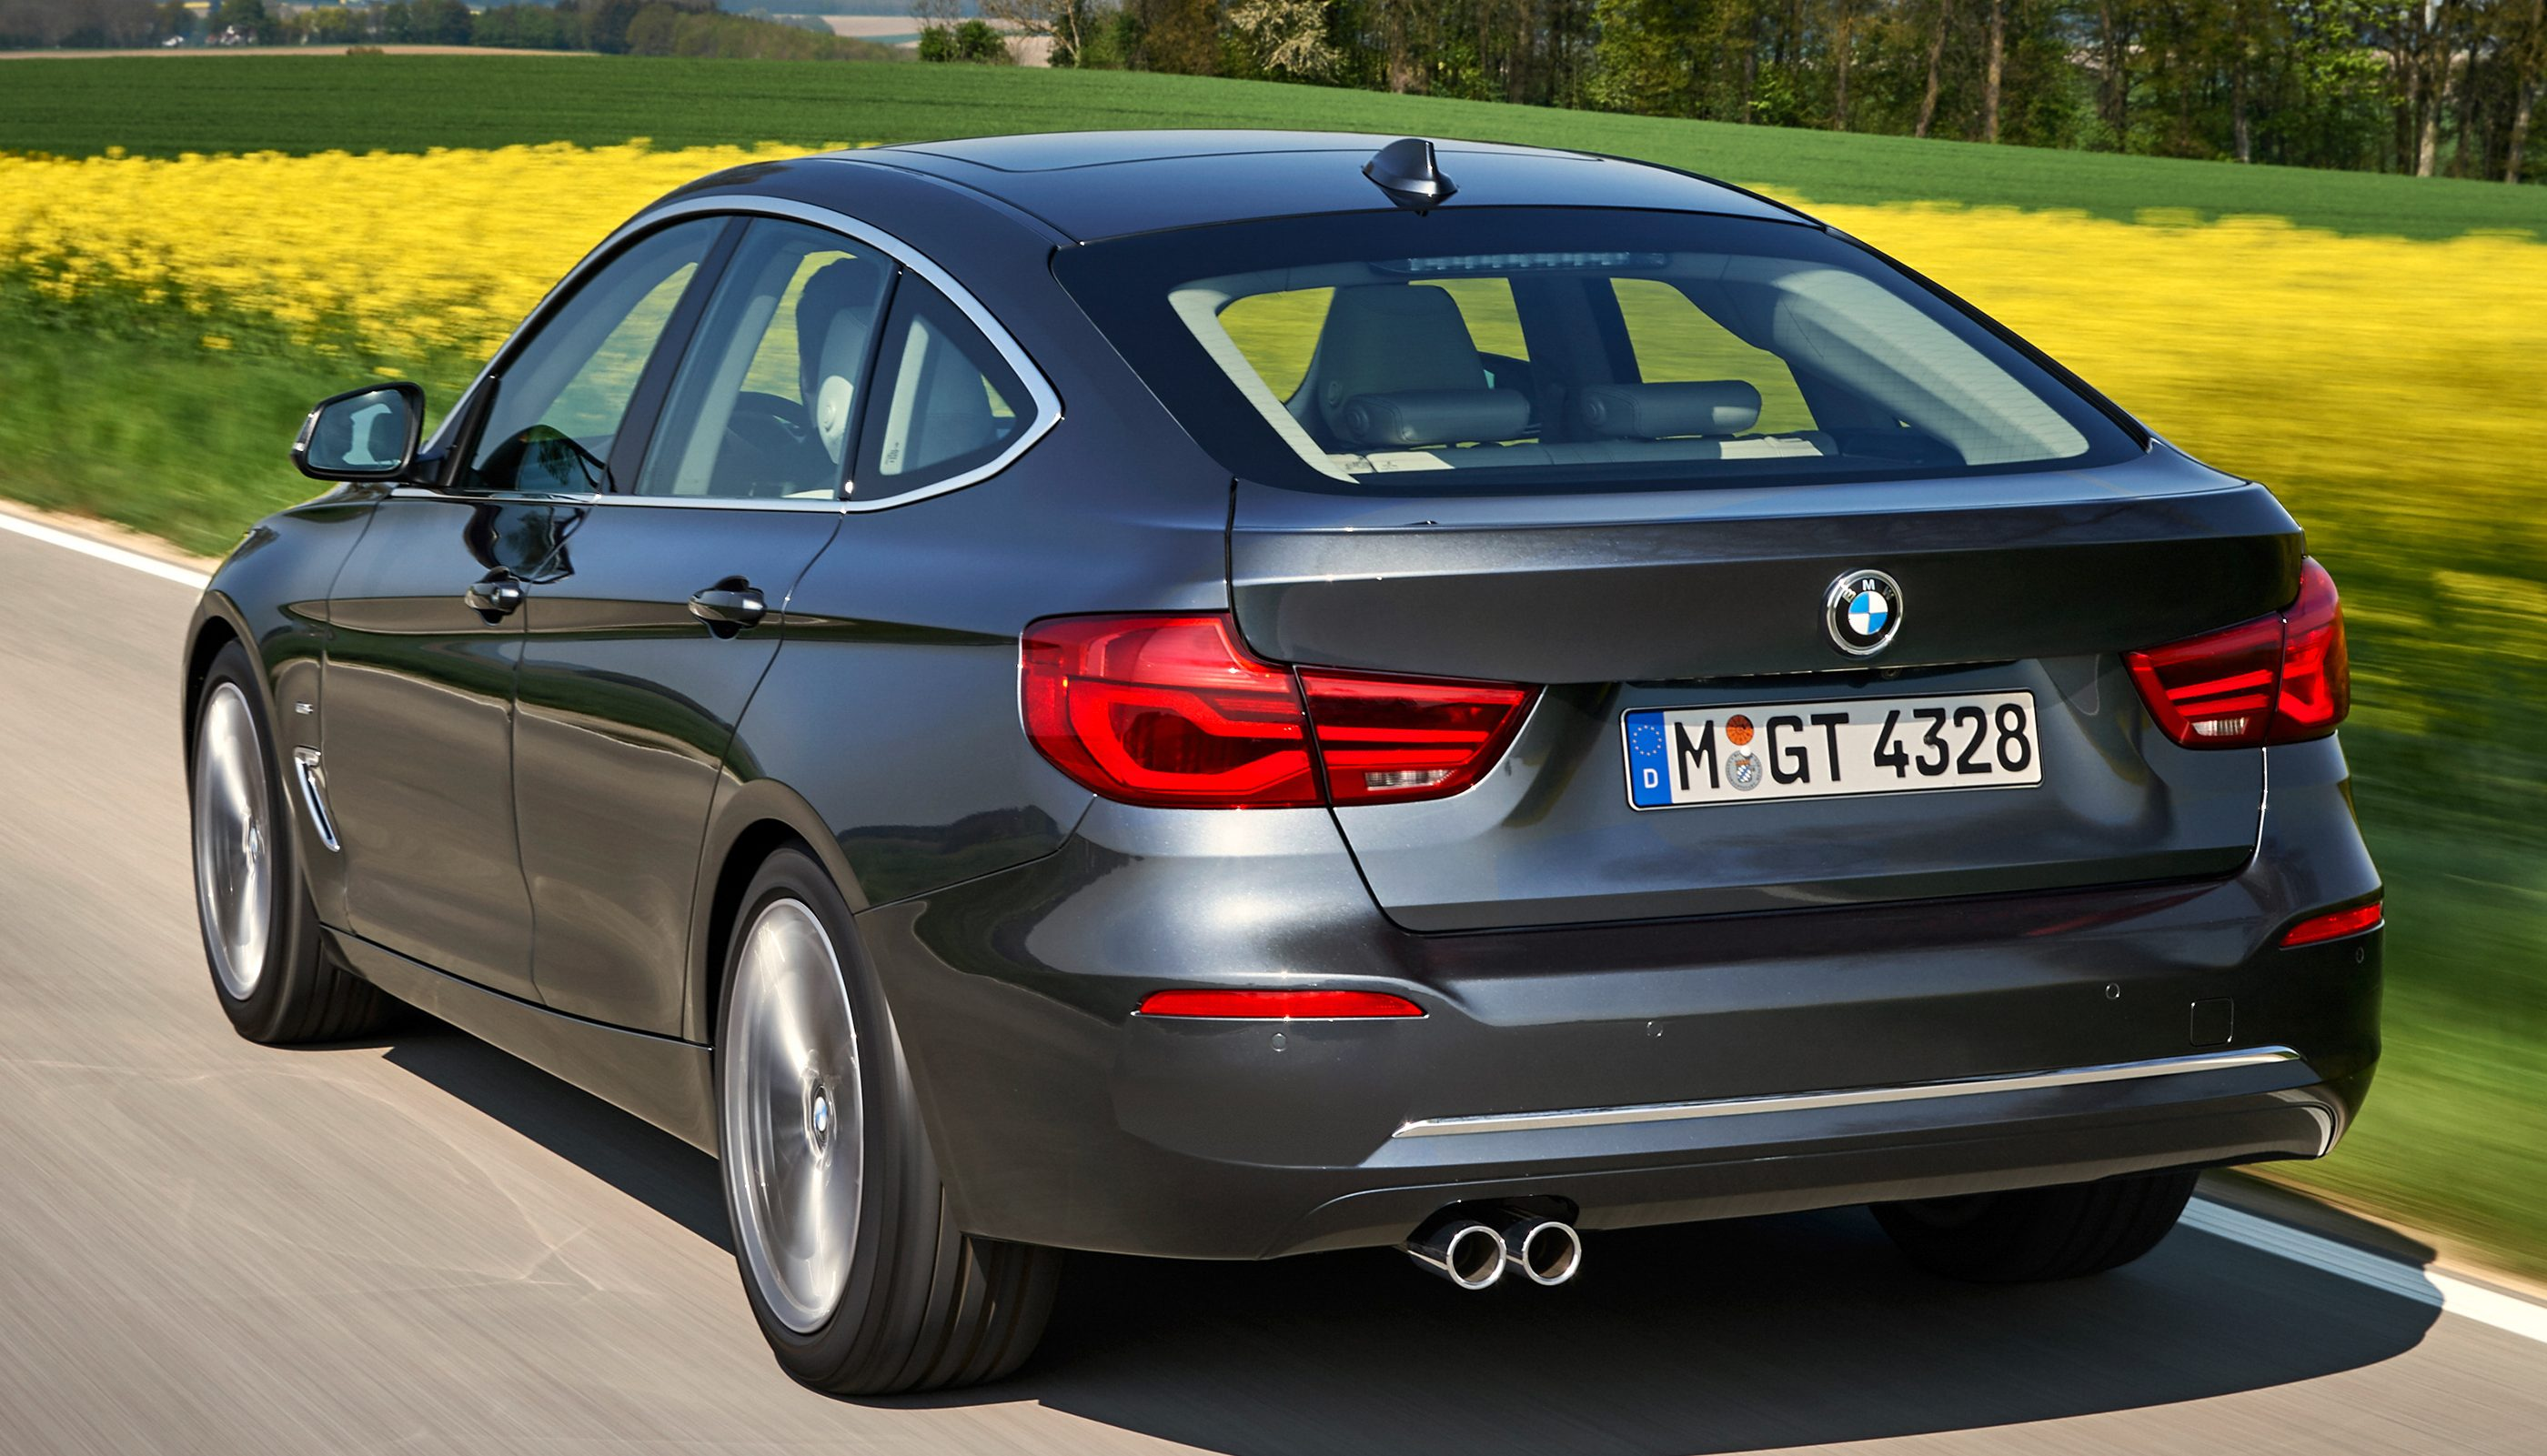 Bmw 320I 2016 >> F34 BMW 3 Series GT LCI facelift – new looks and kit Paul Tan - Image 502270